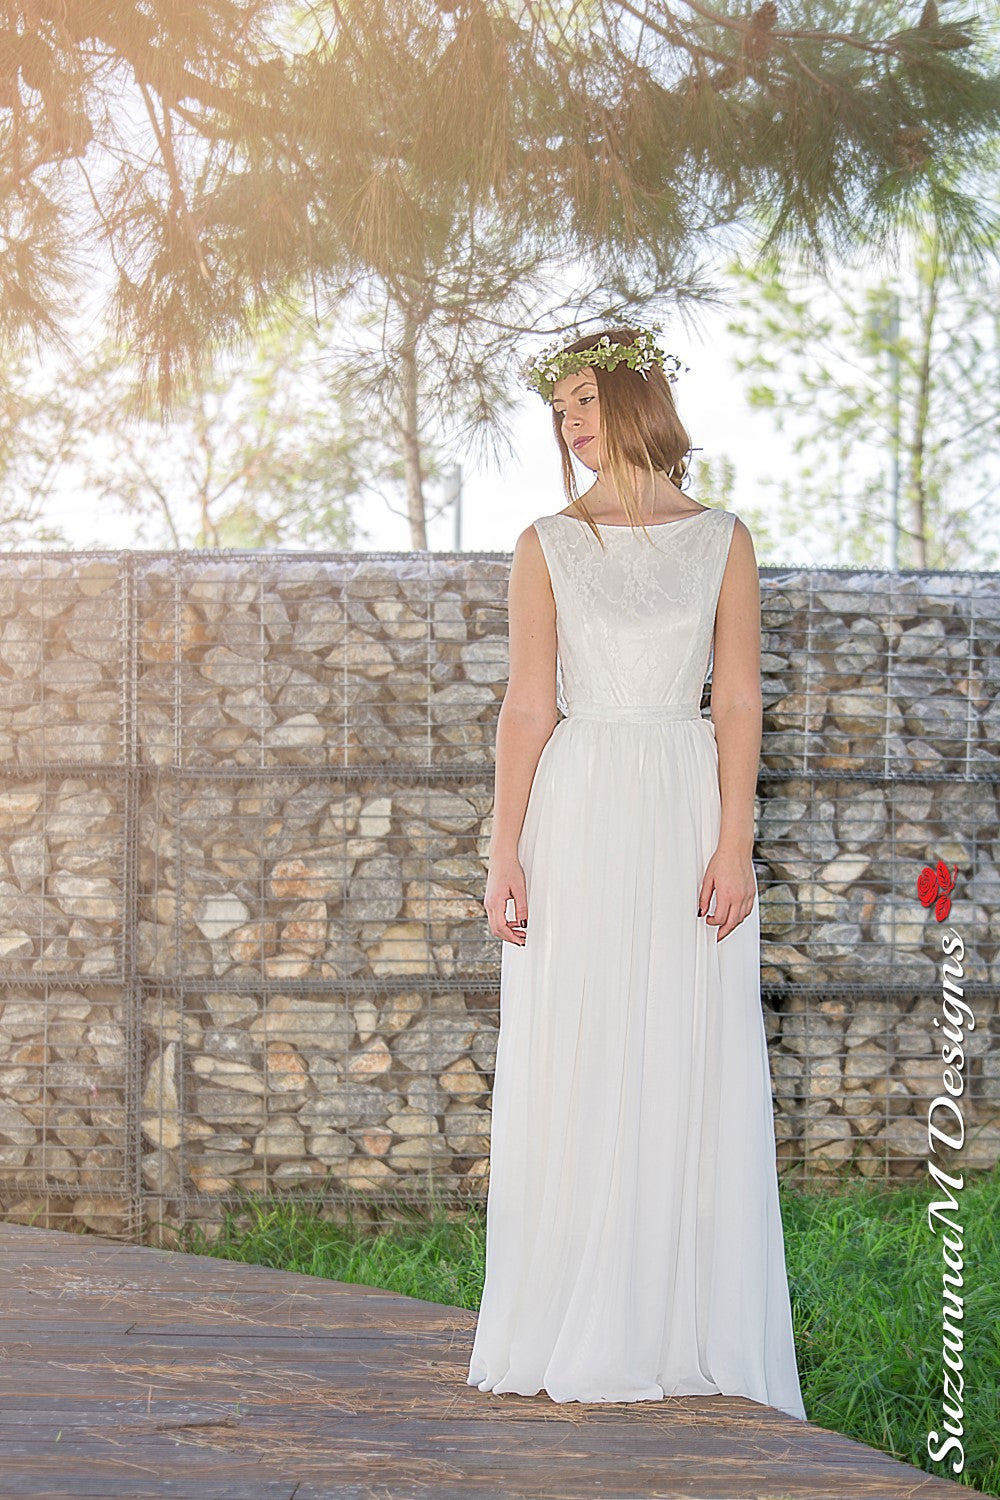 Alba Handmade Vintage Wedding Dress